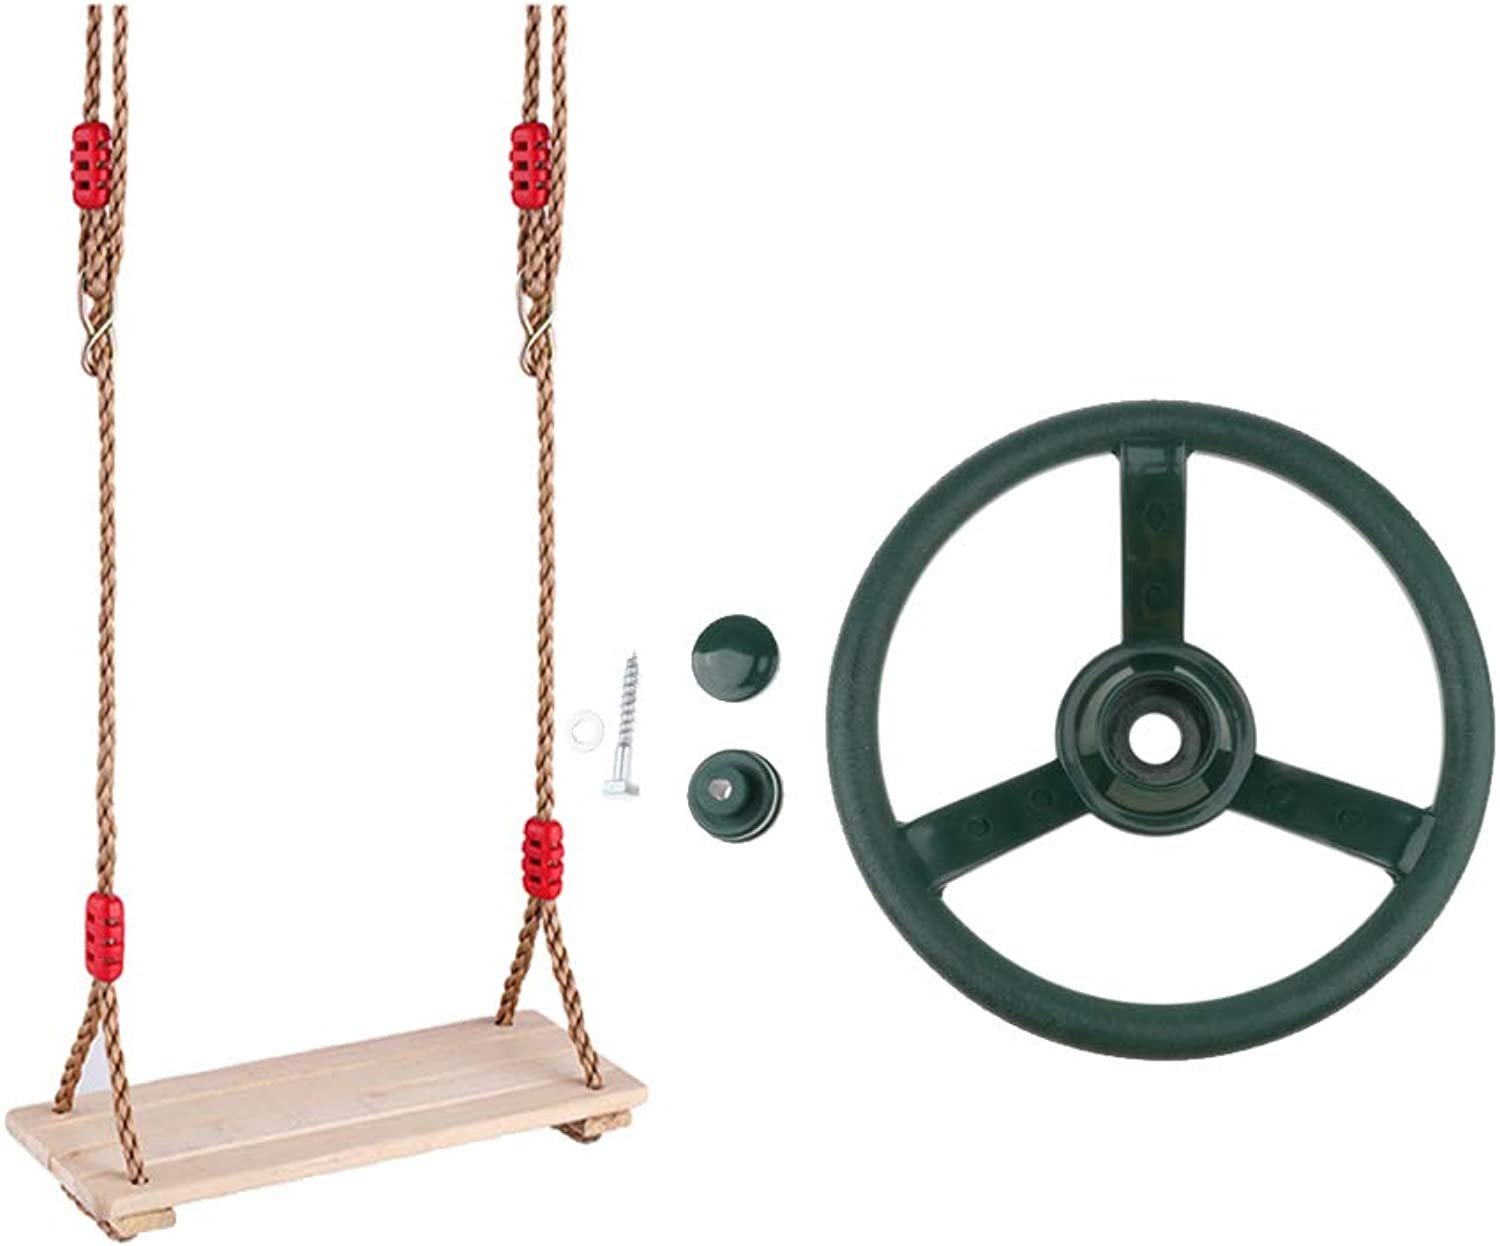 Baoblaze Kids Backyard Playground Toy Steering Wheel + Wooden Swing Seat Tree House Climbing Frame Kids Park Game Toy